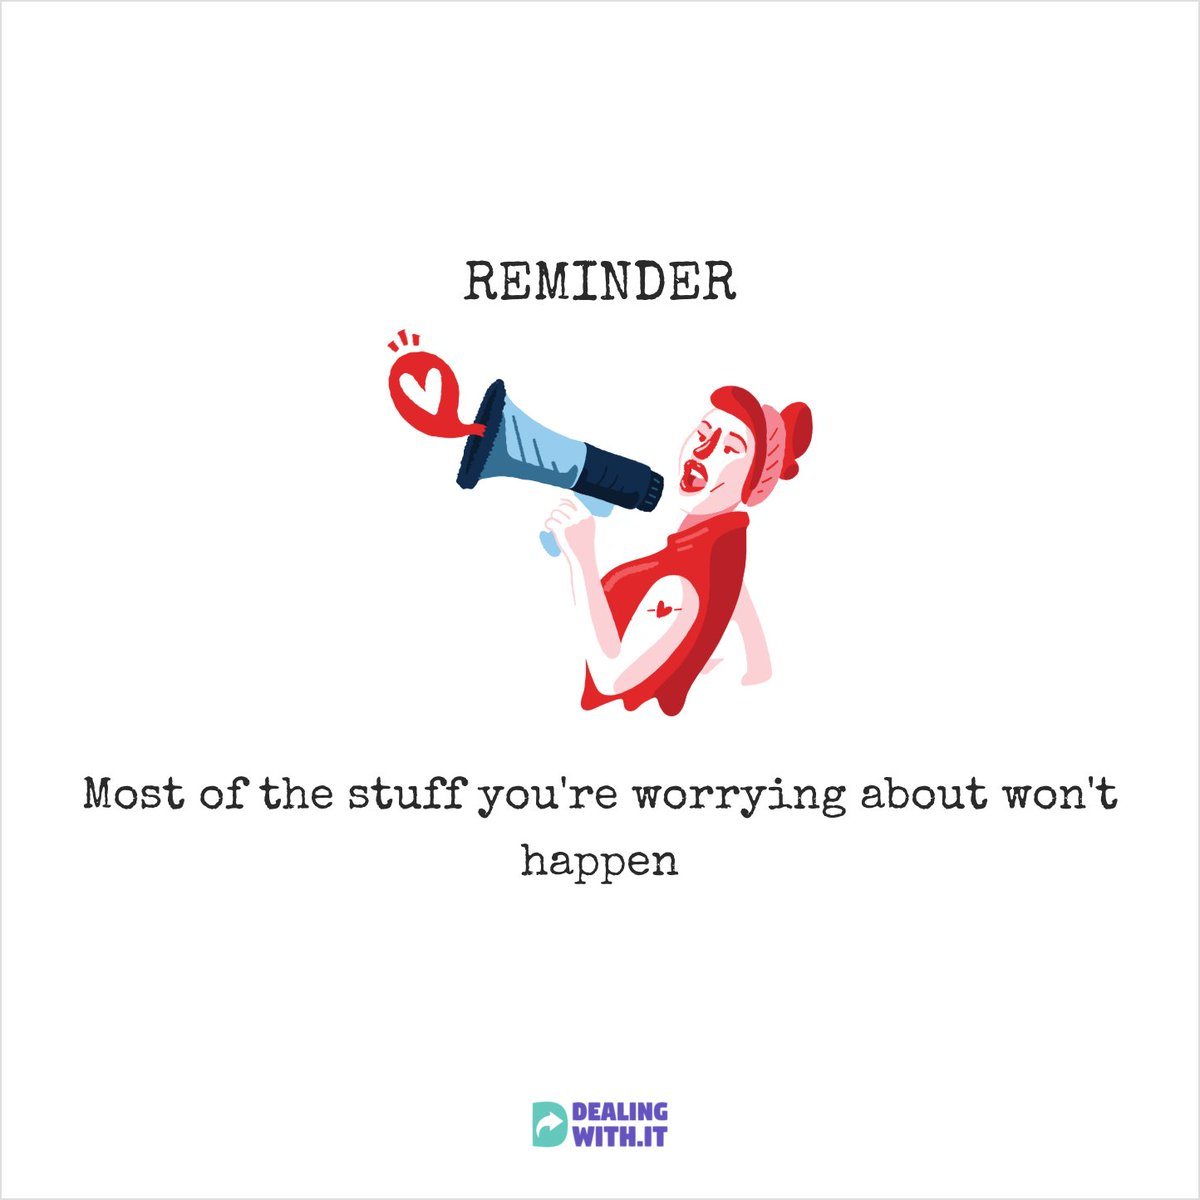 Reminder: most of the stuff you worrying about won't happen. #mentalhealth #anxiety #dealingwithit #wellness #health #wellbeing #positive #qoutes #motivational https://t.co/9W0W3LKqdj